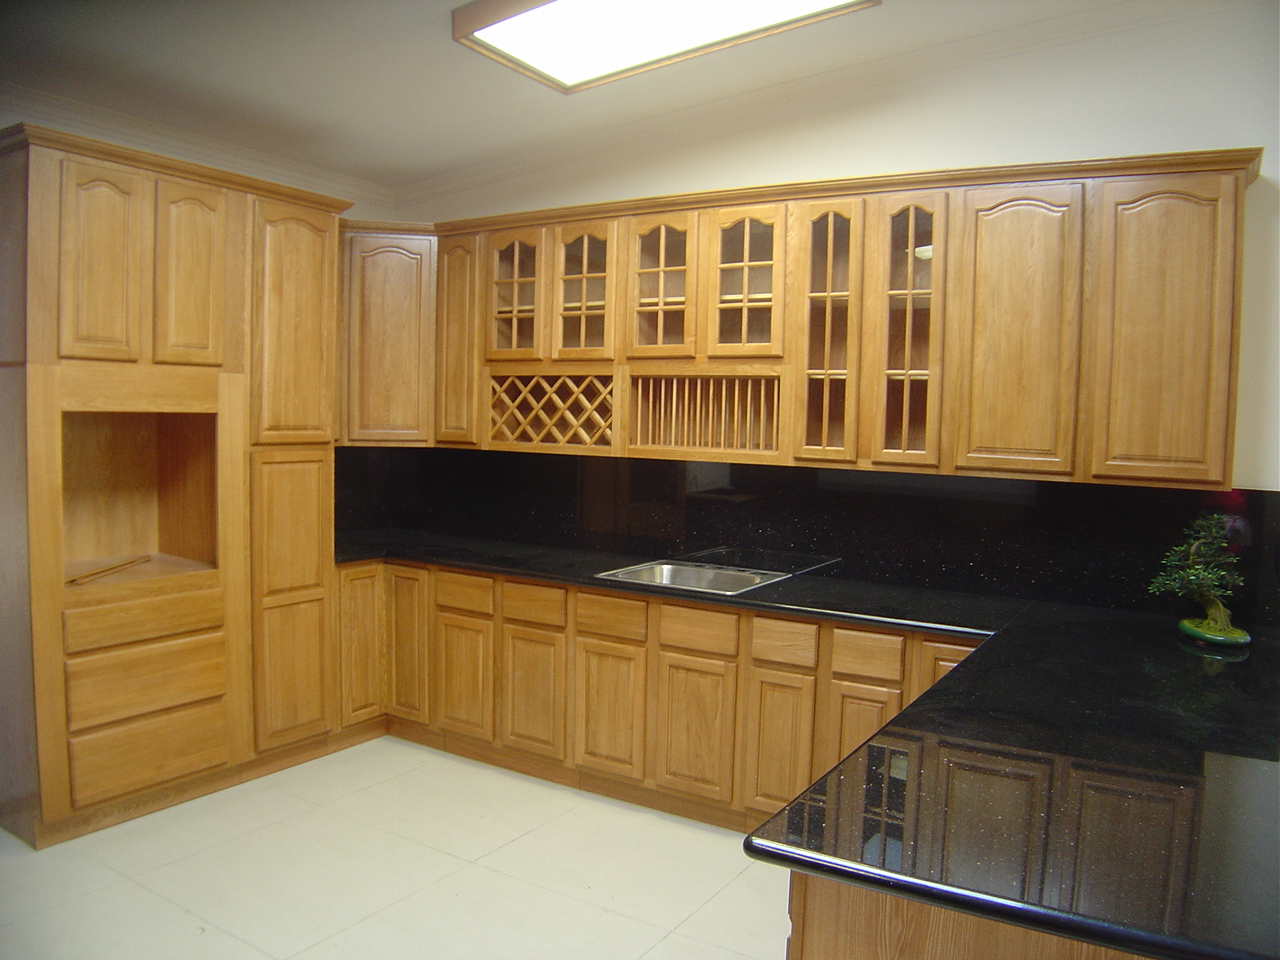 Oak kitchen cabinets for your interior kitchen minimalist for Kitchen interior design pictures